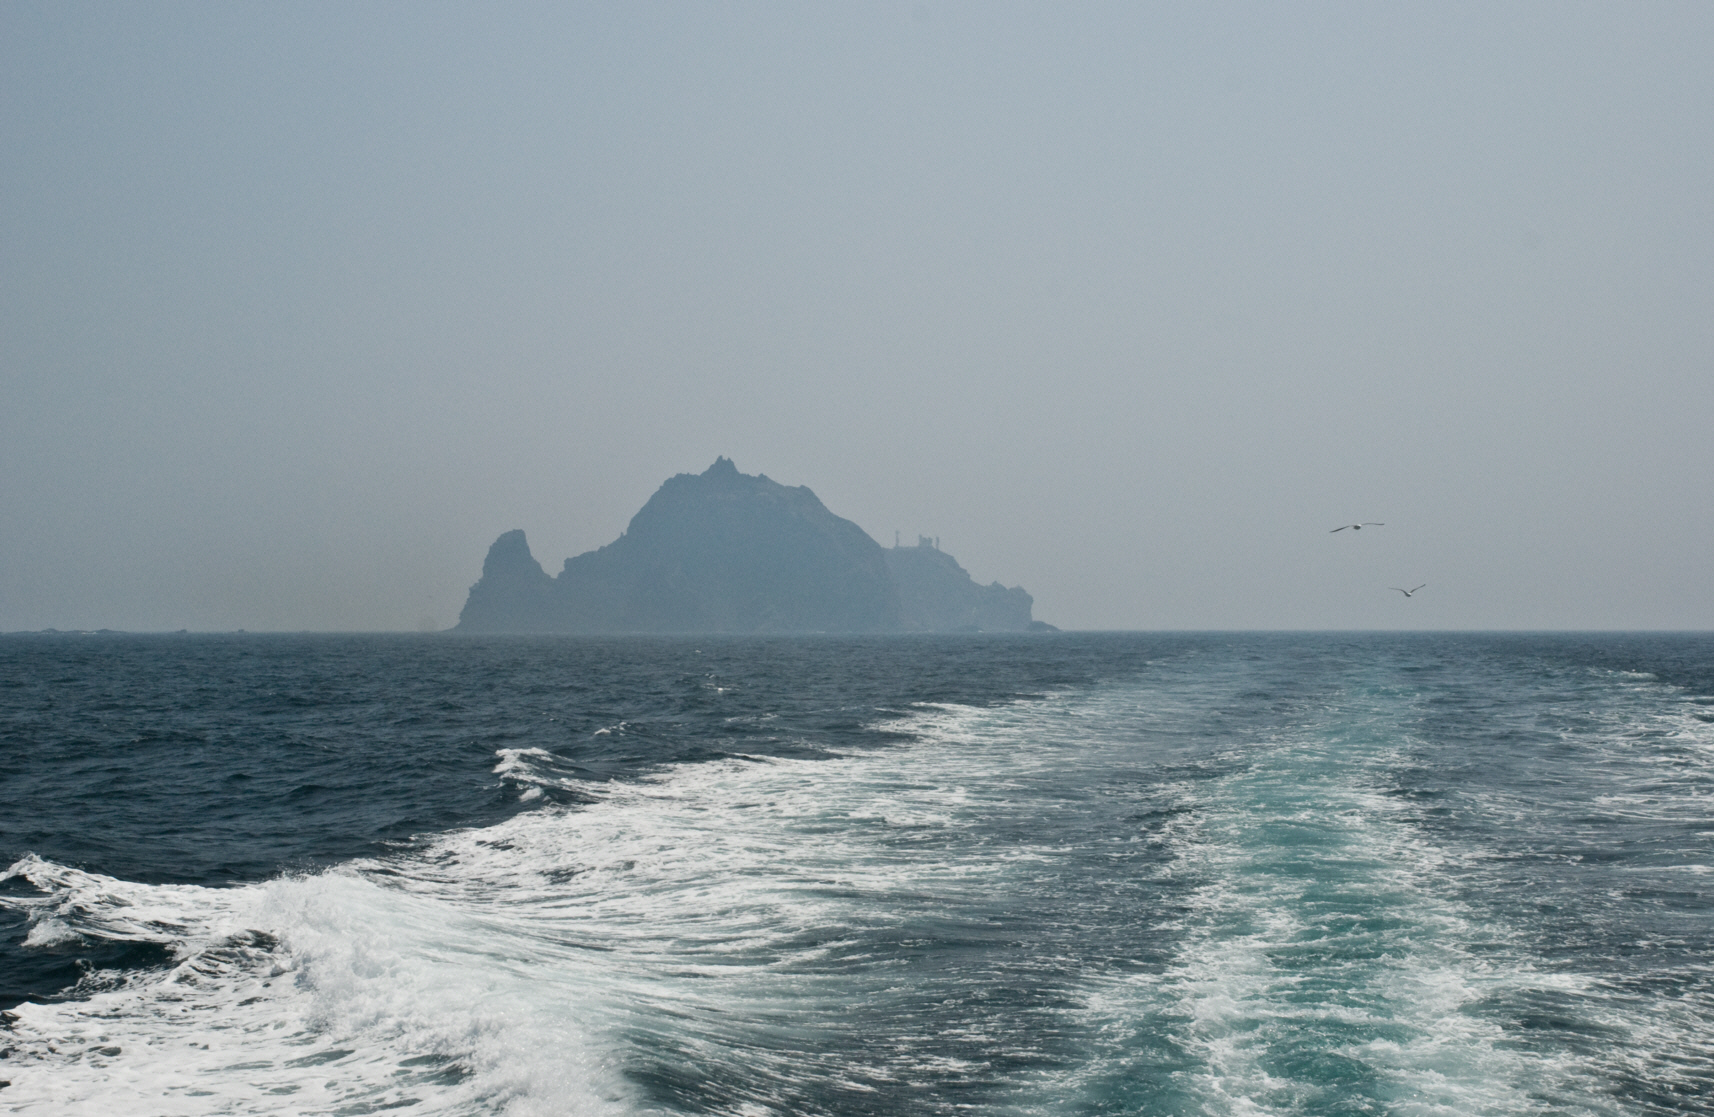 A picture of Korea's Dokdo Island on a hazy day 독도 獨島 竹島 たけしま